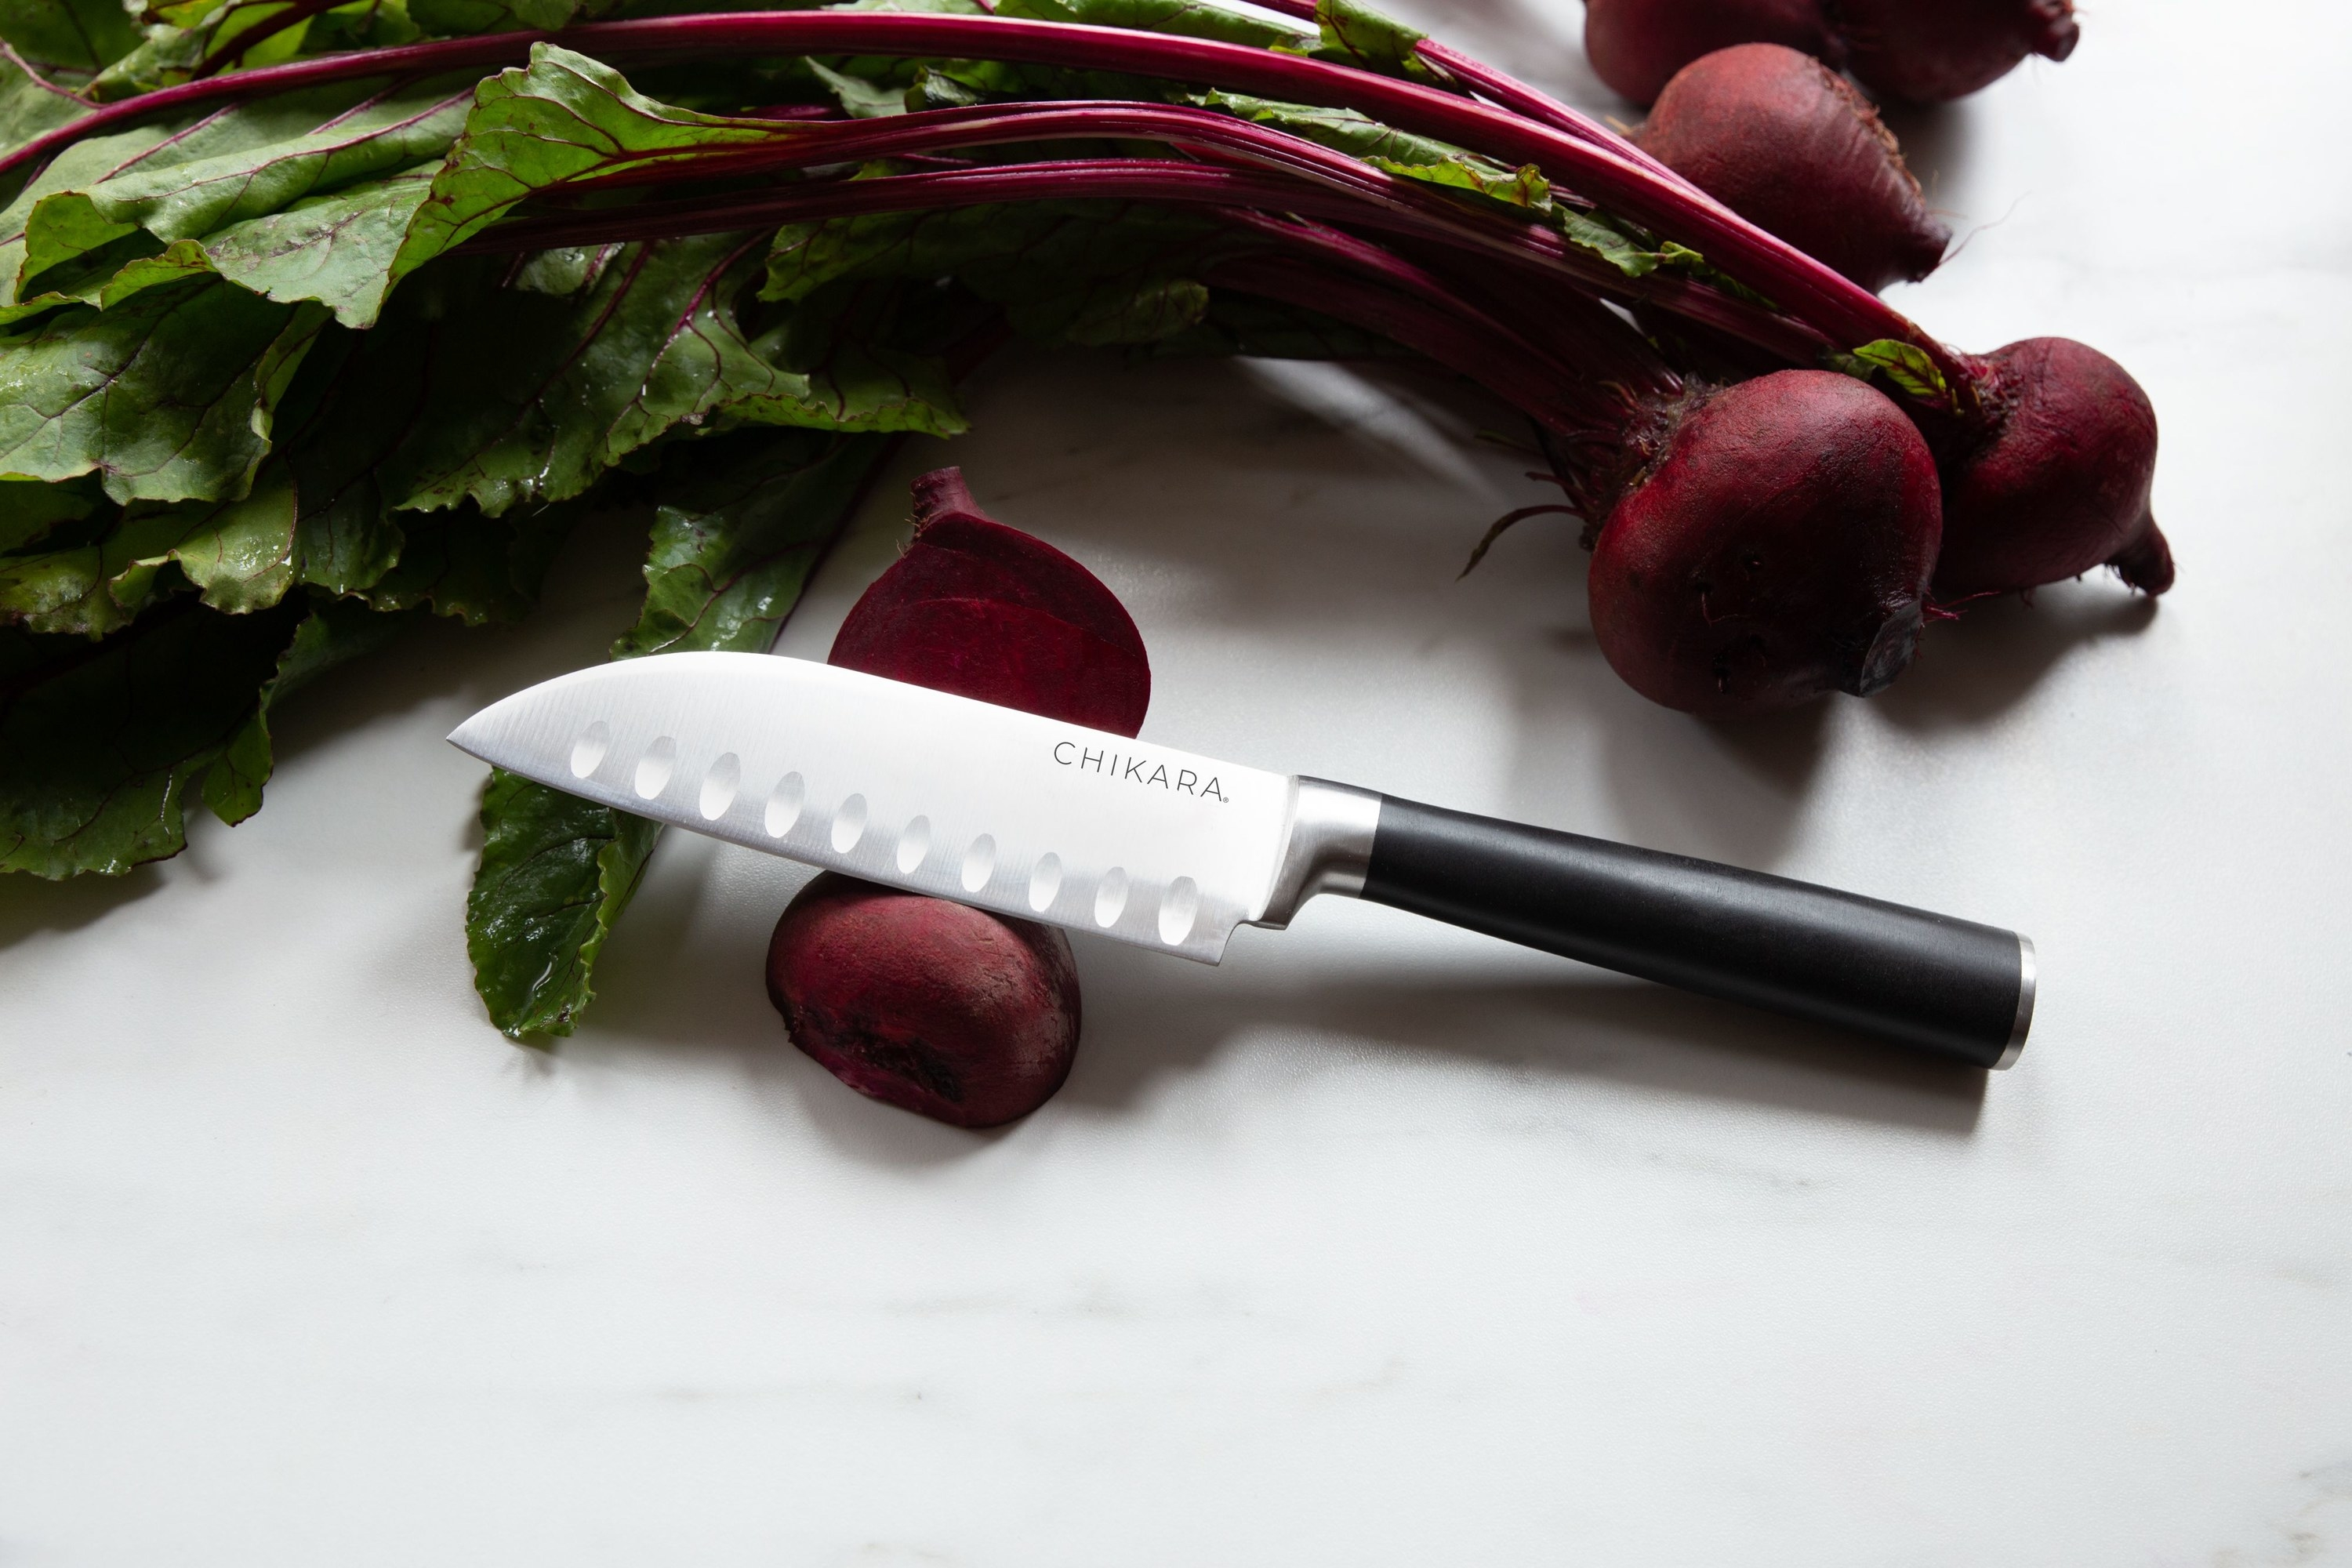 The serrated chef's knife